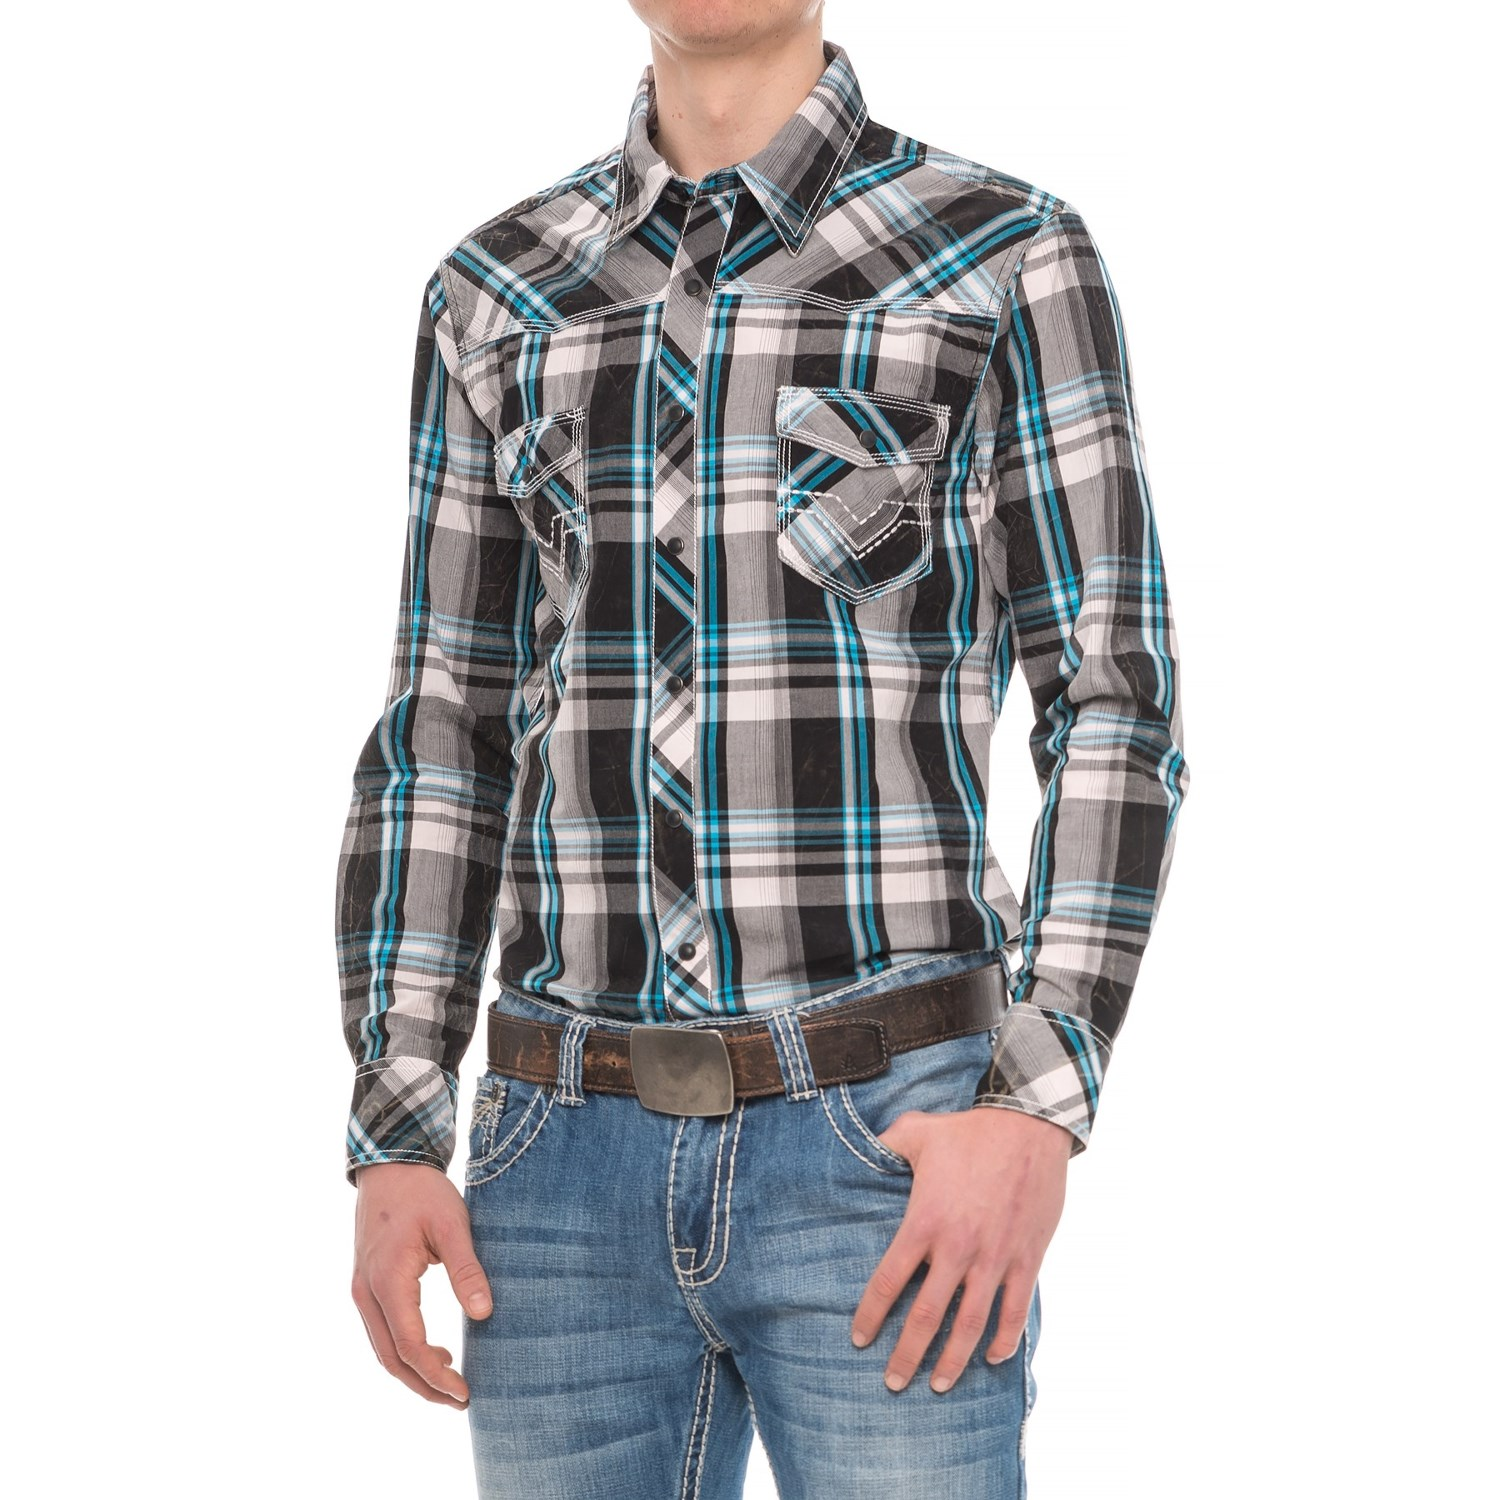 White pants and plaid shirts are worn to the office in summer months while black trousers and blue plaid shirts transition through any season. Wear a long sleeve plaid shirt to weddings, evening events and dinner dates.